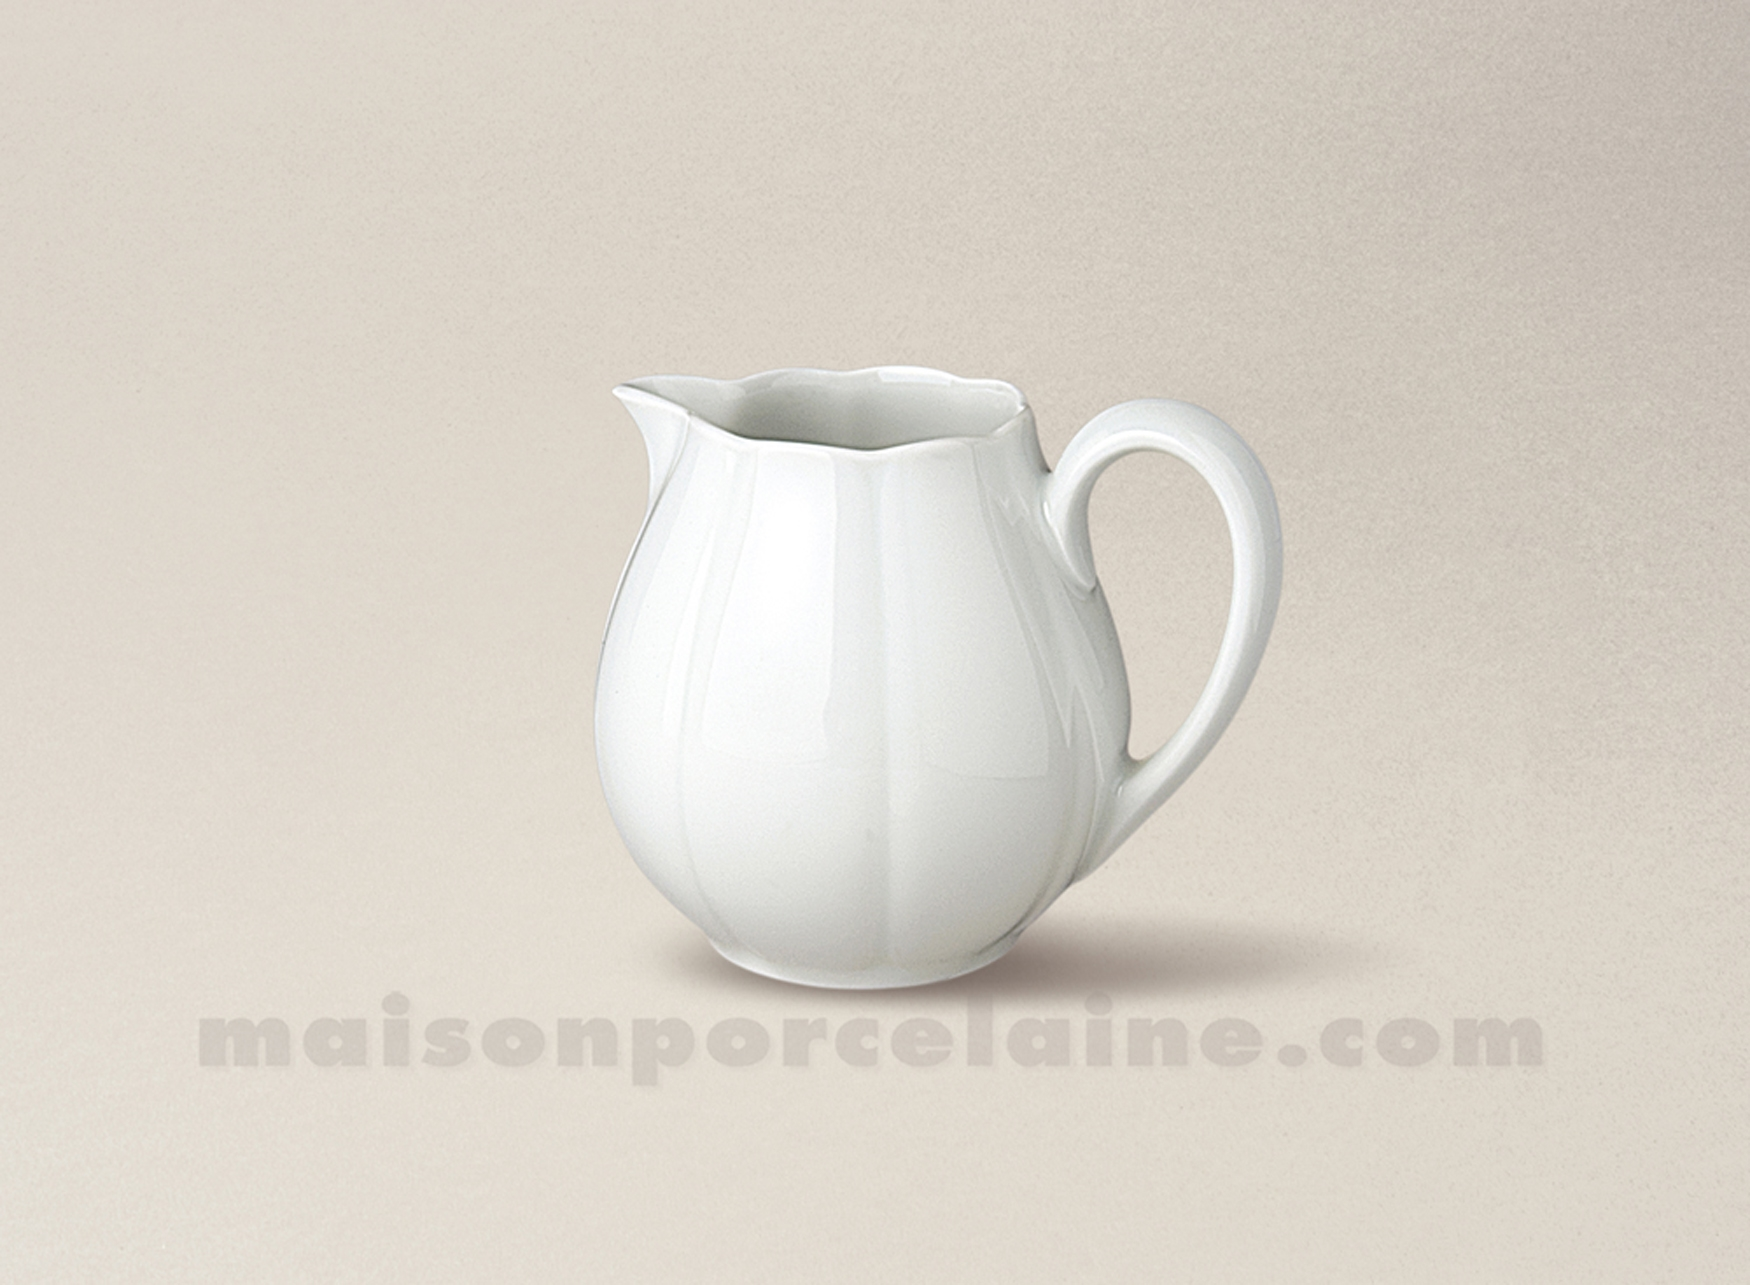 Cremier limoges porcelaine blanche nymphea 2 tasses for Maison de la porcelaine